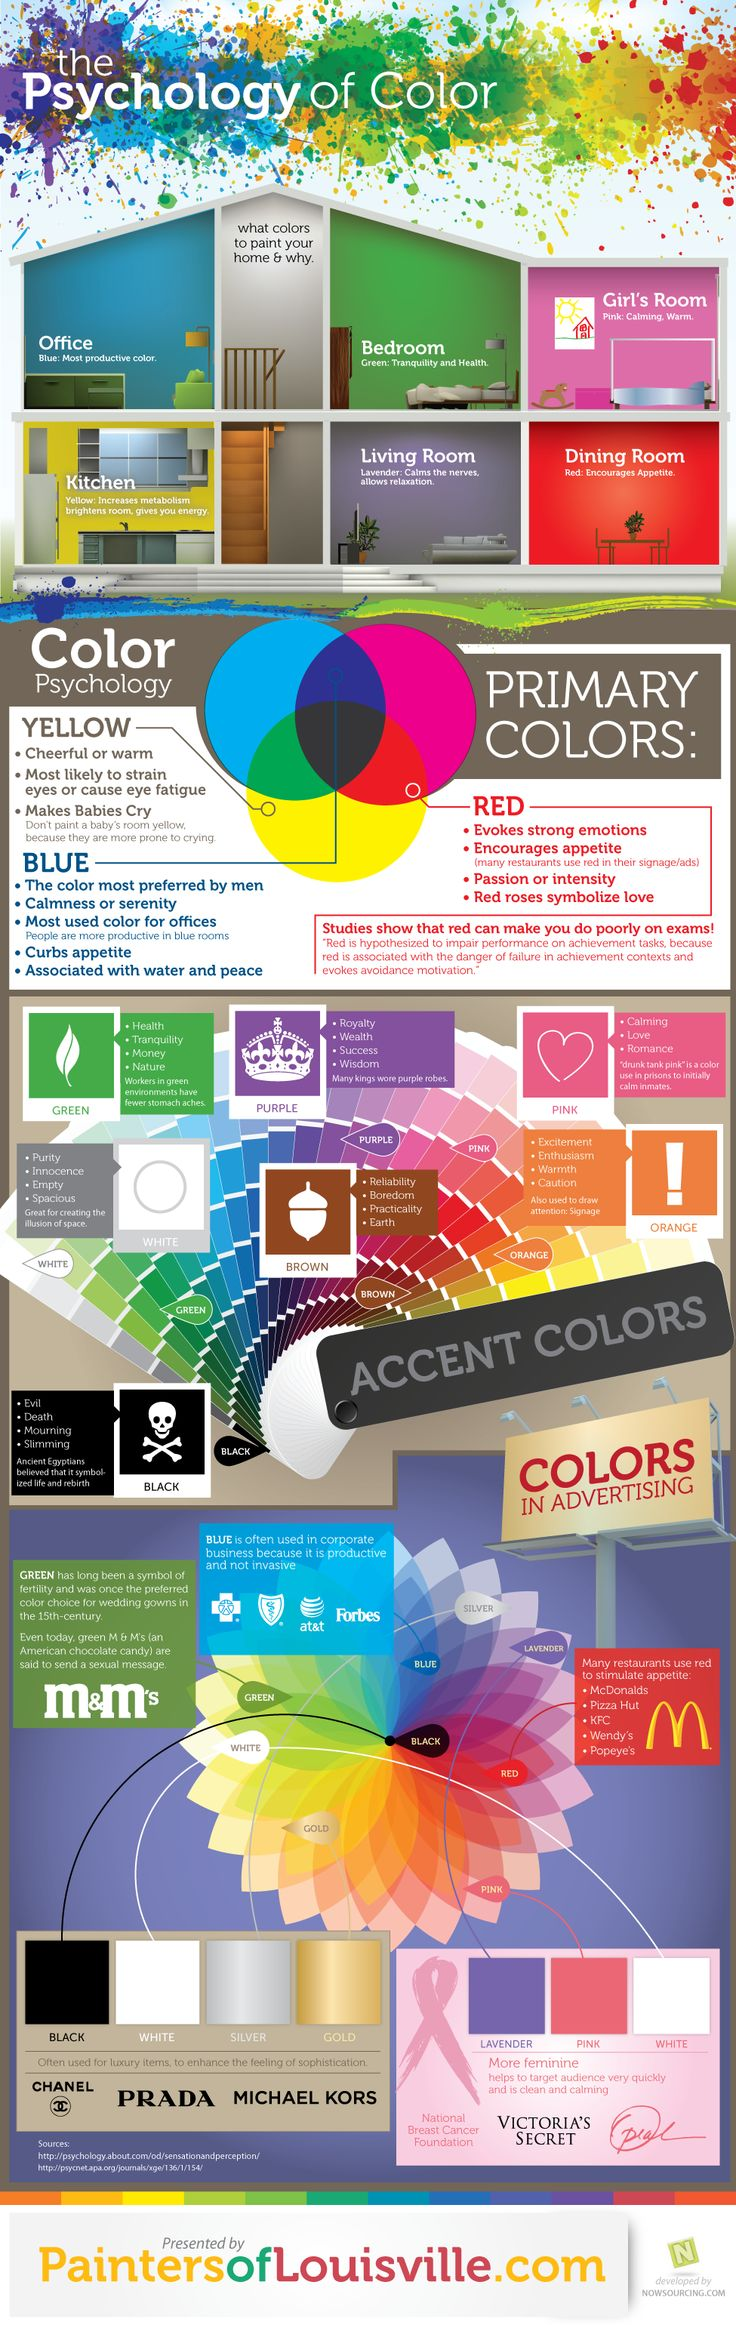 Really cool infograph about the psychology of color - what colors you should in what rooms and how color affects your mood.